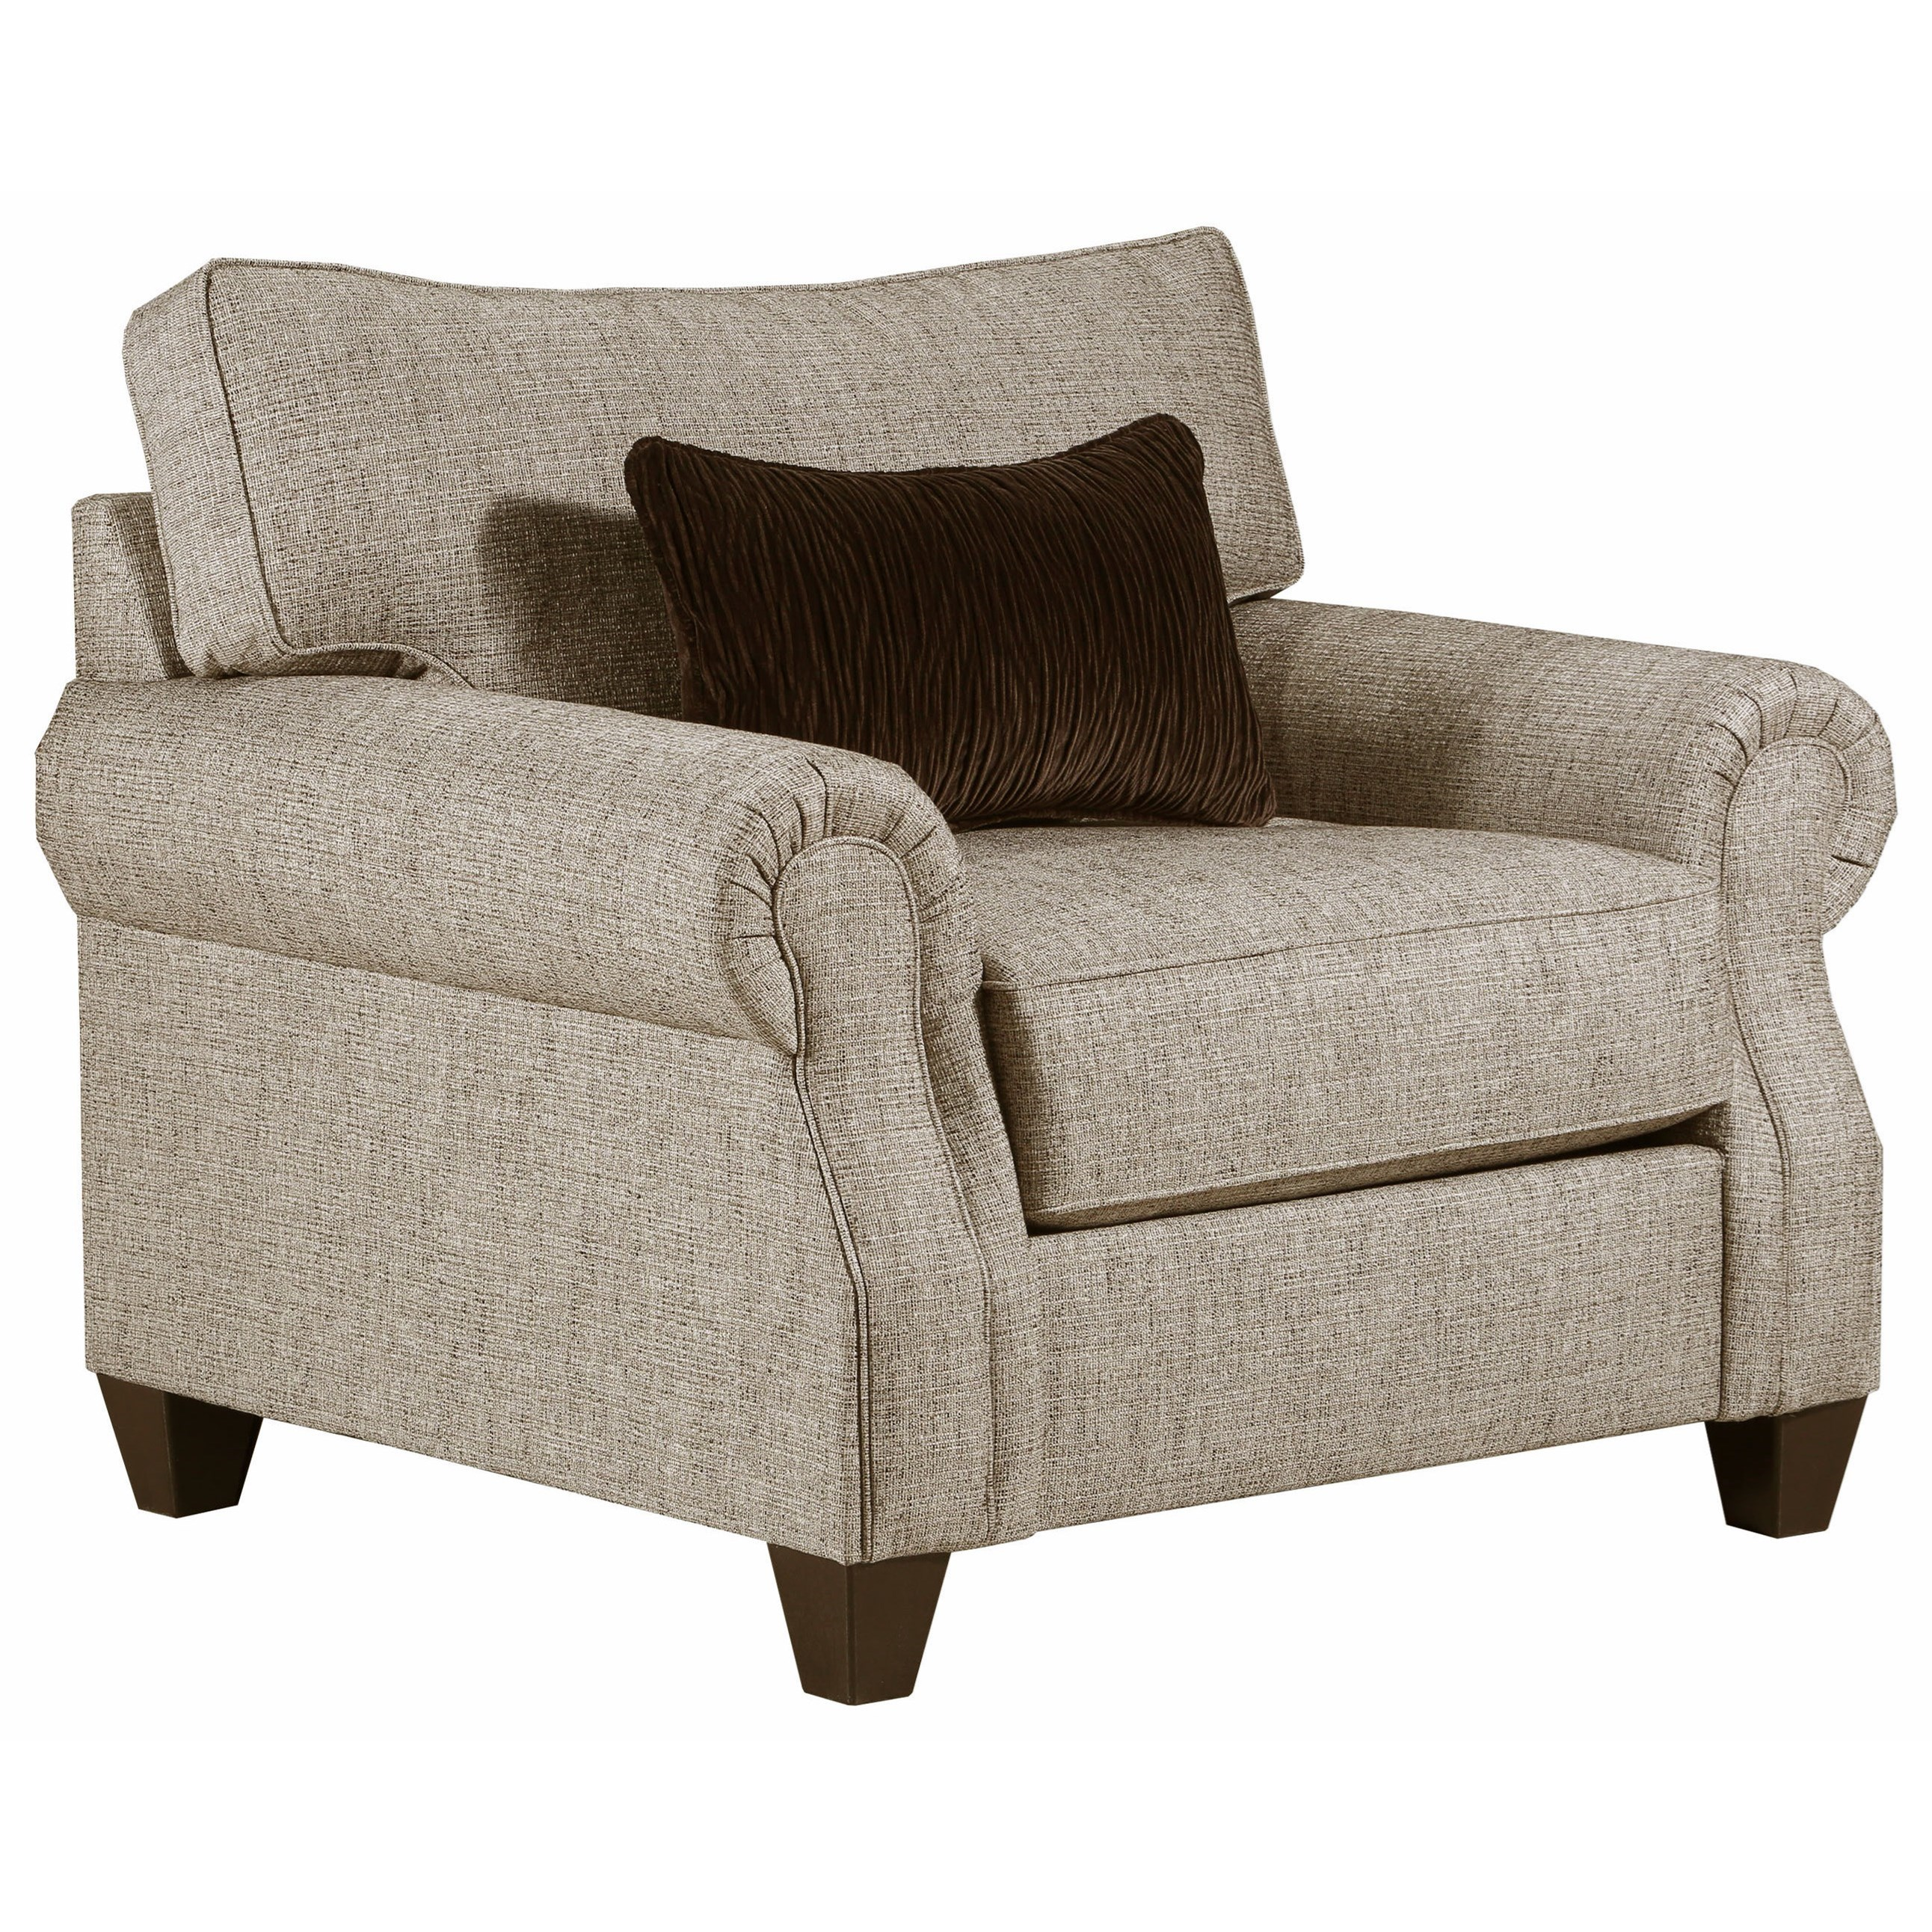 8010 Chair by Lane at Darvin Furniture